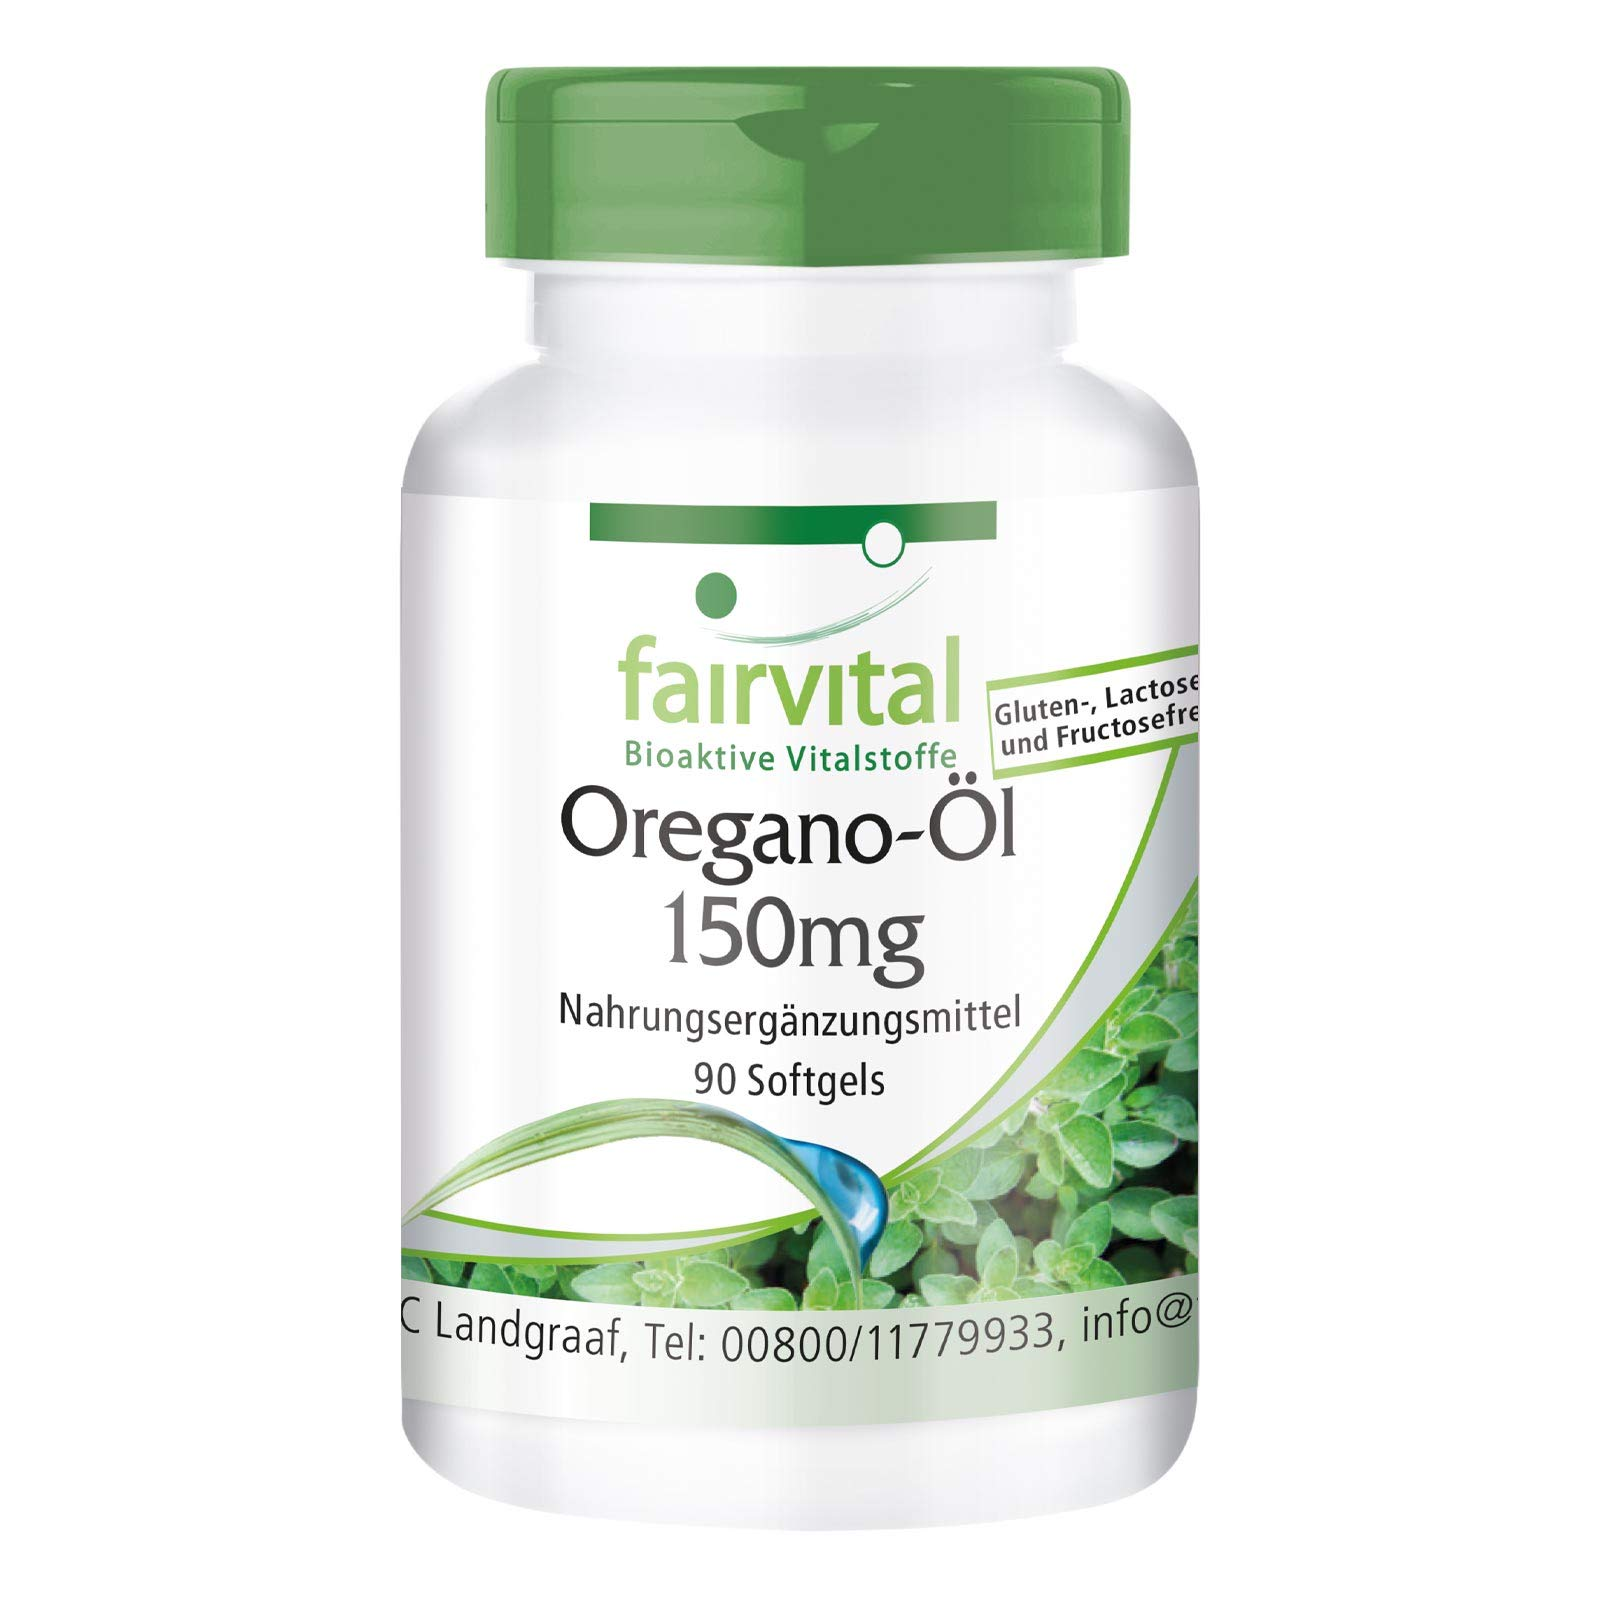 Oregano Oil 150mg - Bulk Pack for 3 Months - Origanum vulgare Extract - 90 softgels - 10-fold Concentrated